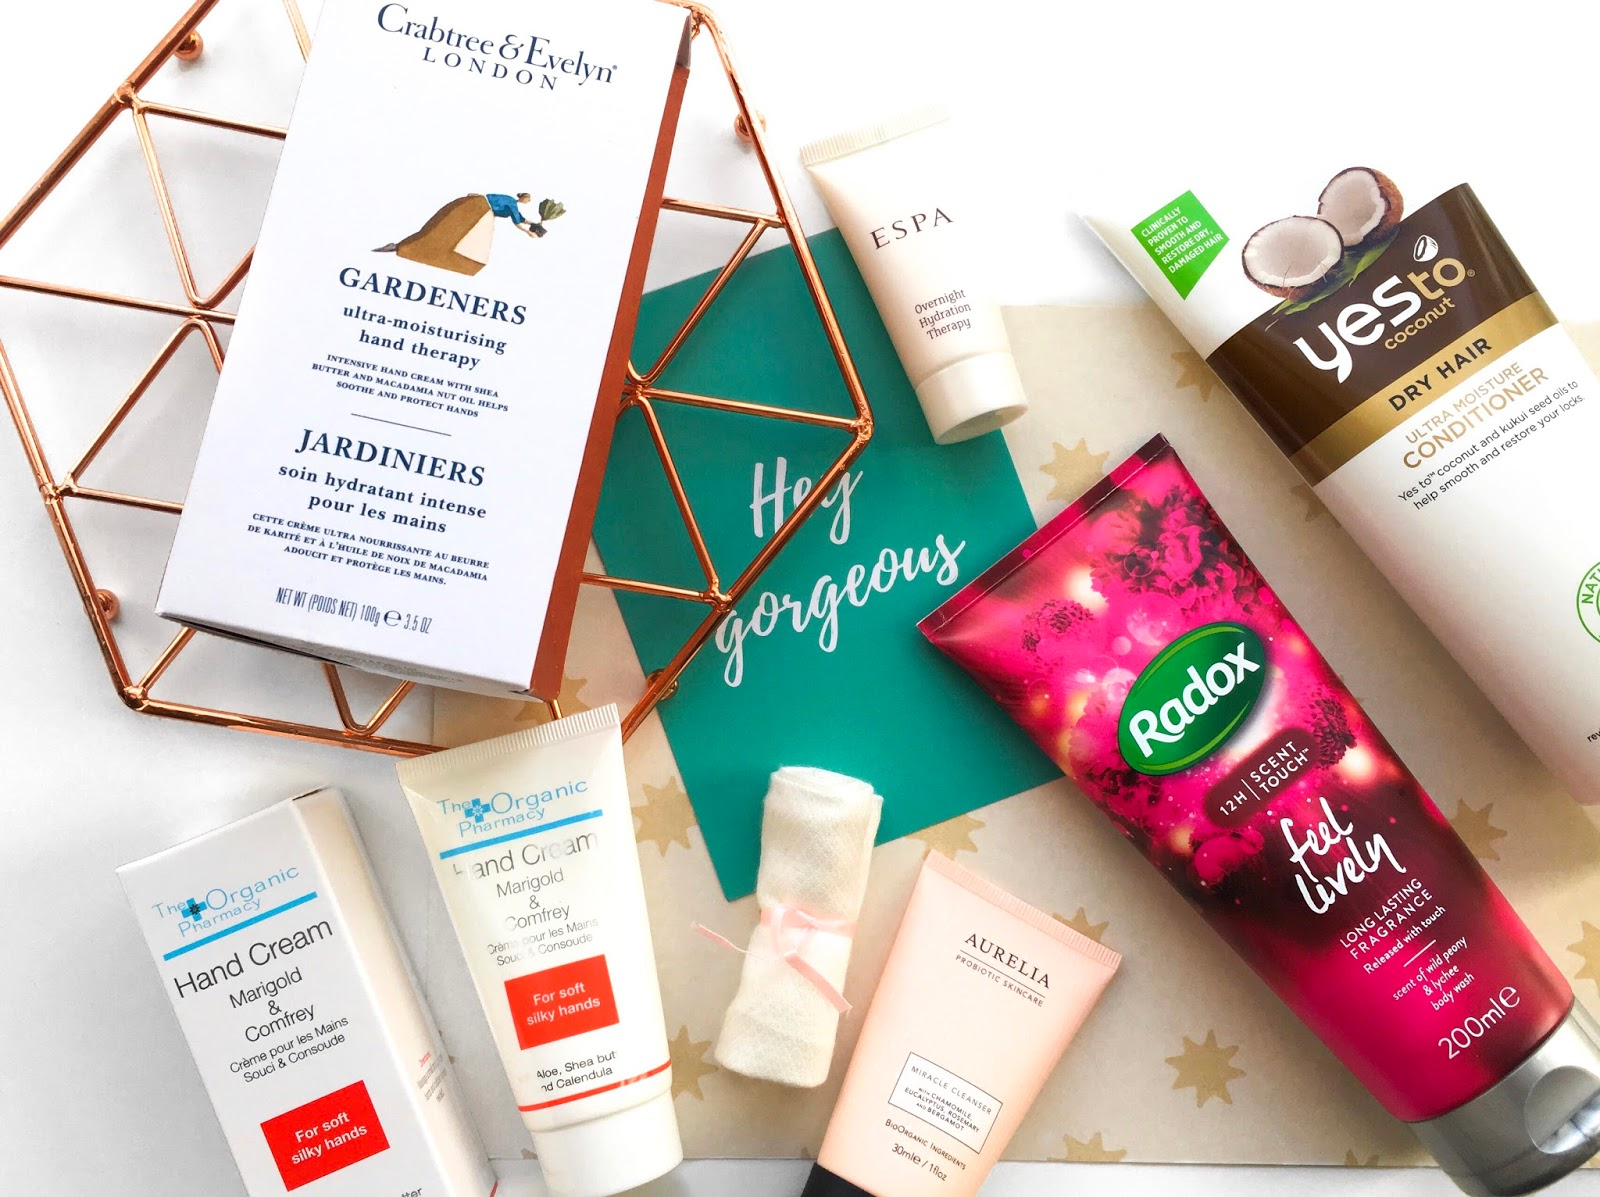 latest in beauty build your own box, latest in beauty subscription review, radox peony body wash, crabtree & evelyn gardeners hand cream